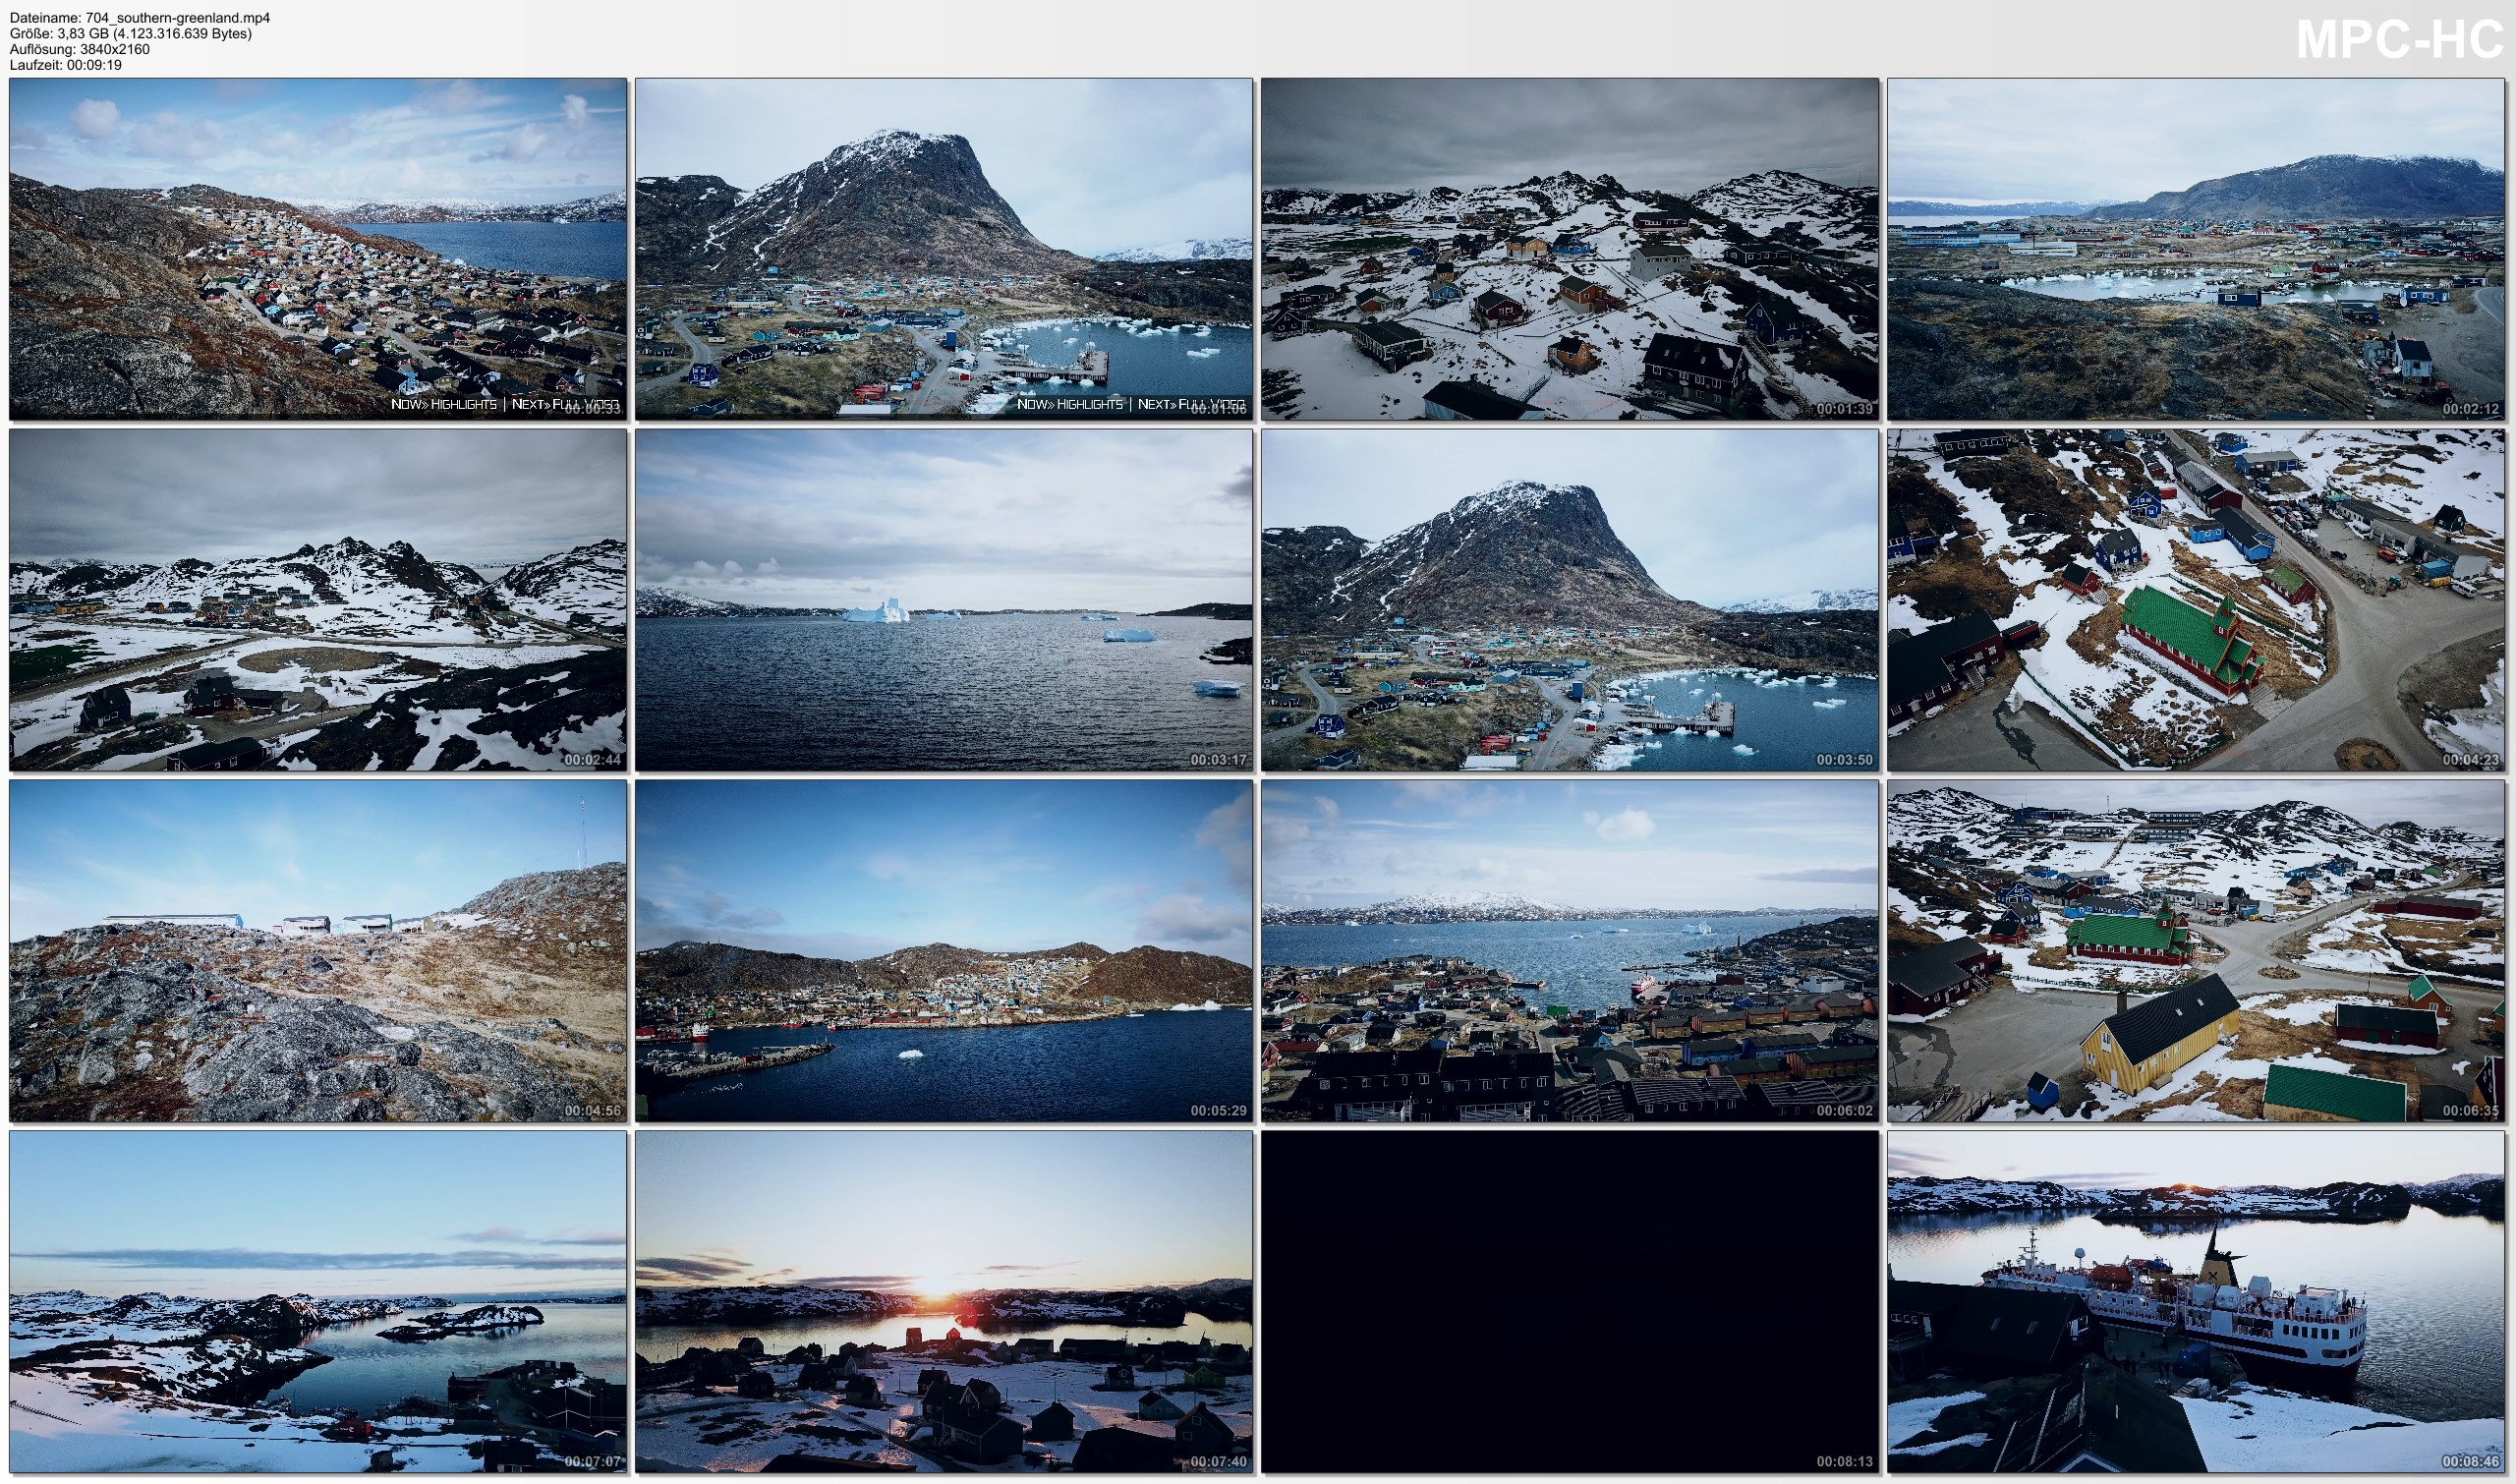 Drone Pictures from Video 【4K】Southern Greenland from Above 2020   Qaqortoq   Paamiut   Narsaq   Cinematic Aerial™ Drone Film